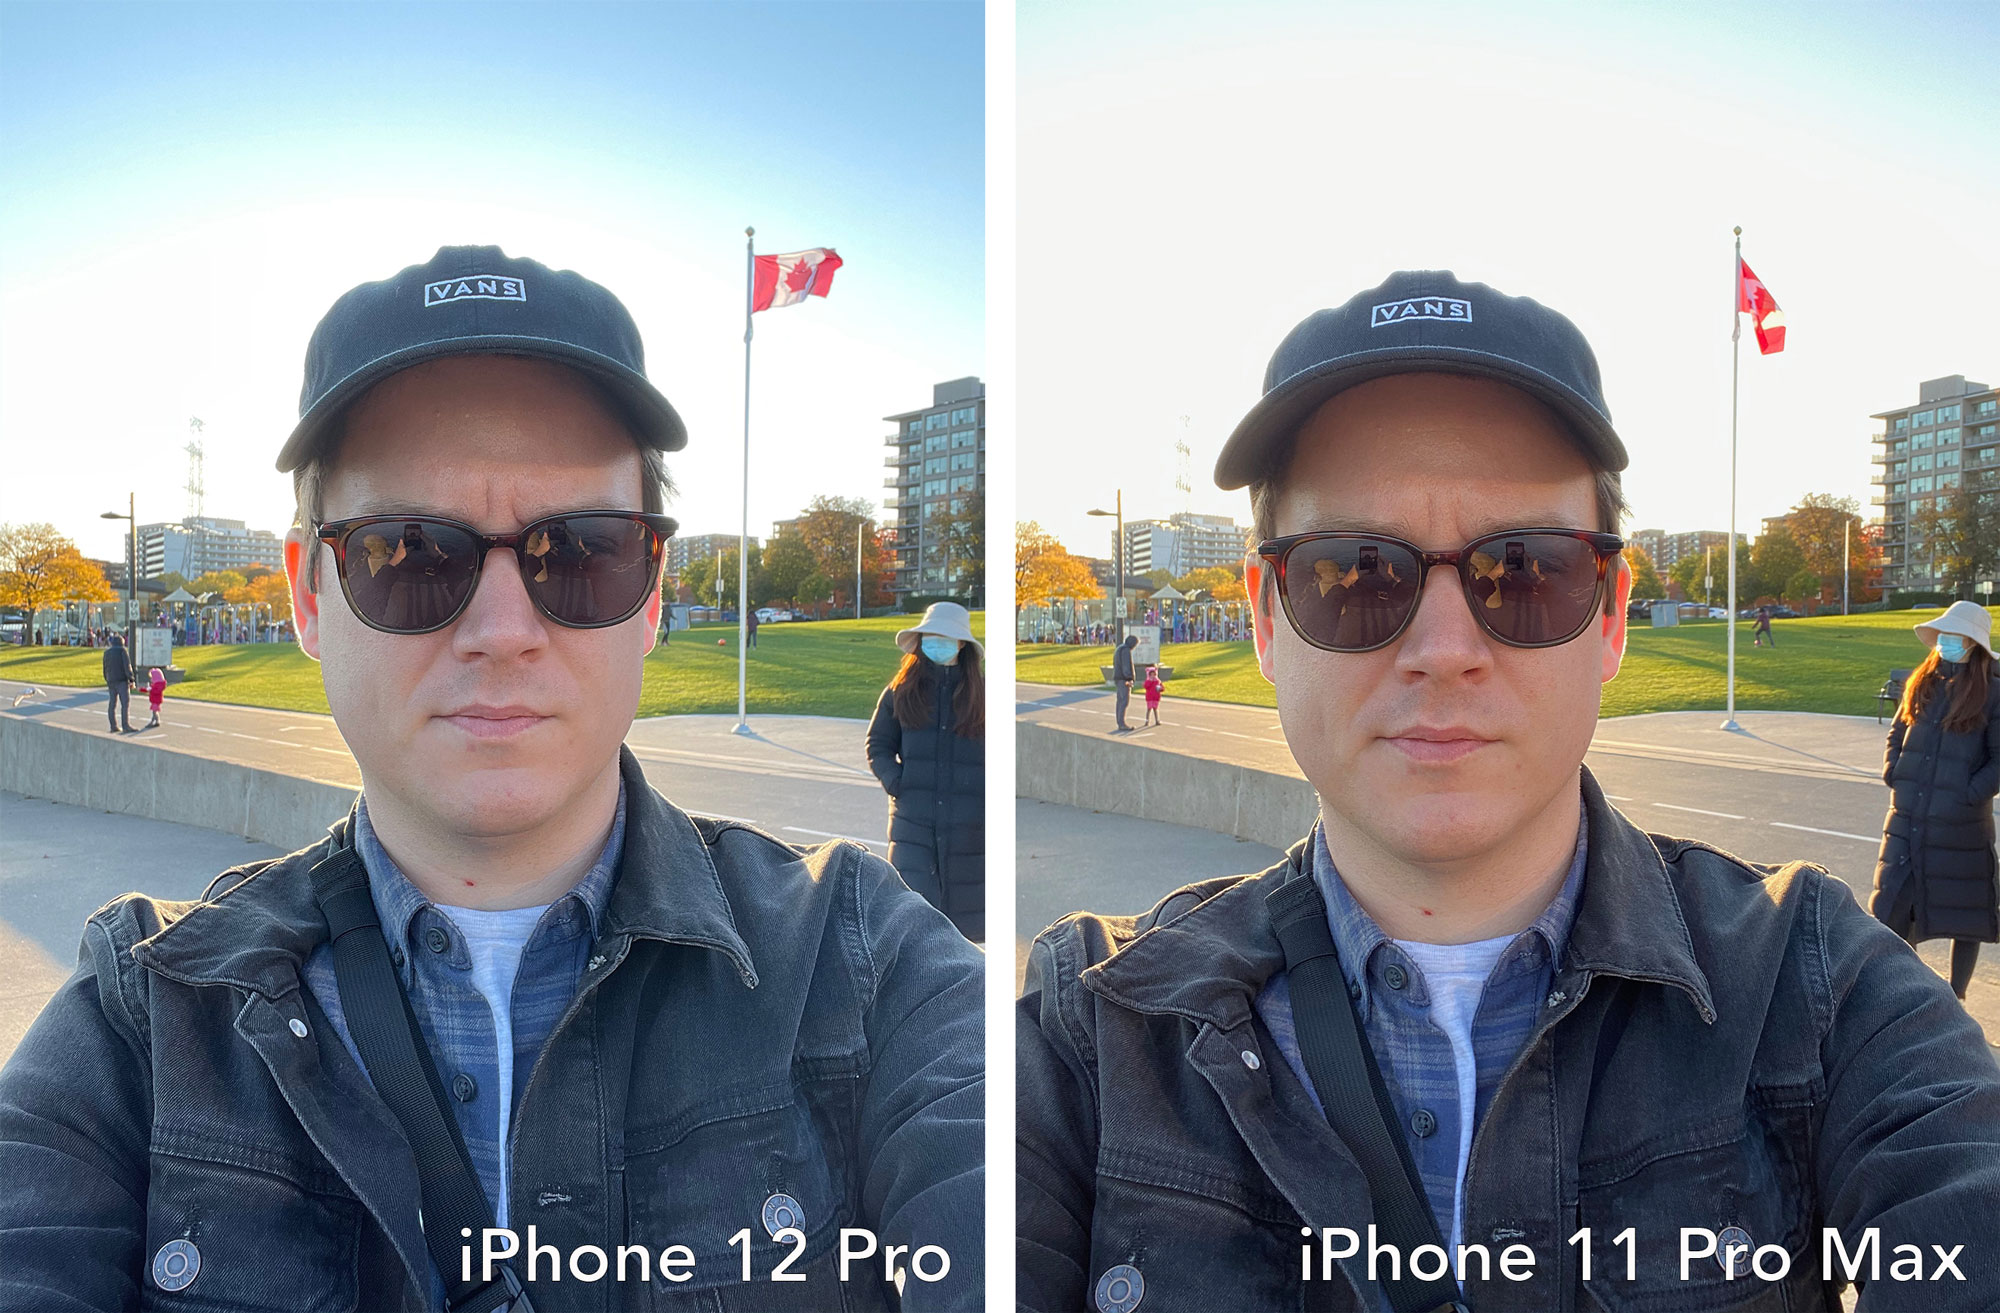 iPhone 12 Pro vs iPhone 11 Pro Max selfie shooter comparison